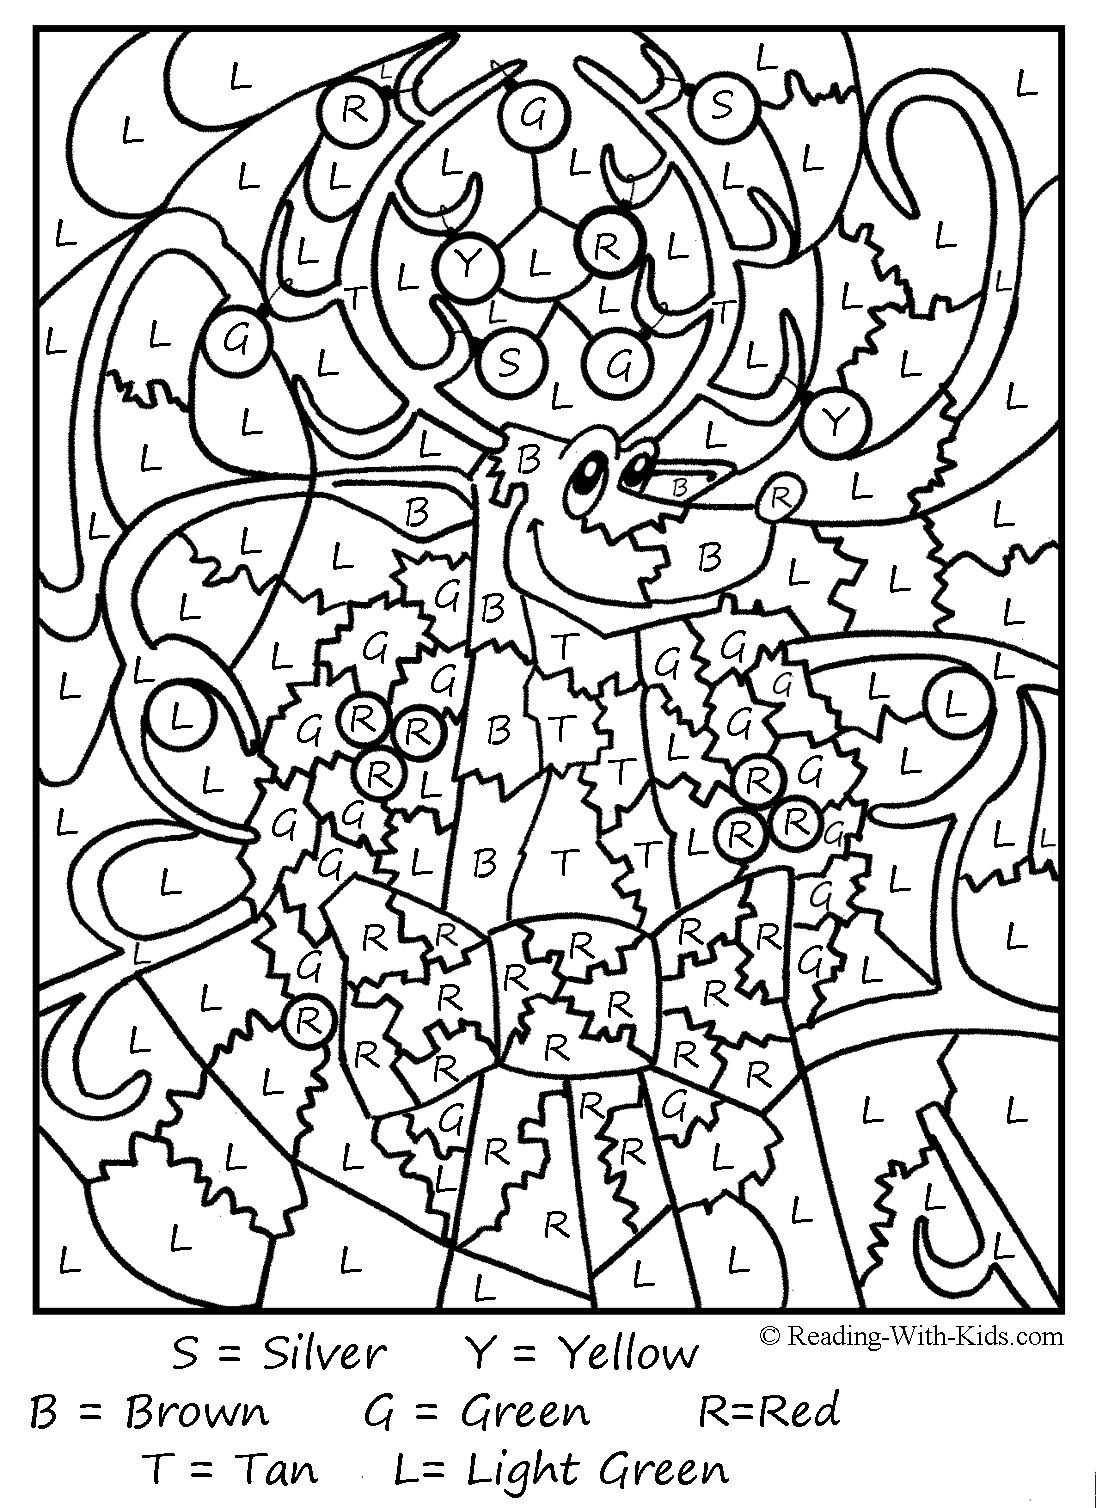 Uncategorized Challenging Color By Number color by letter and number coloring pages are fun and